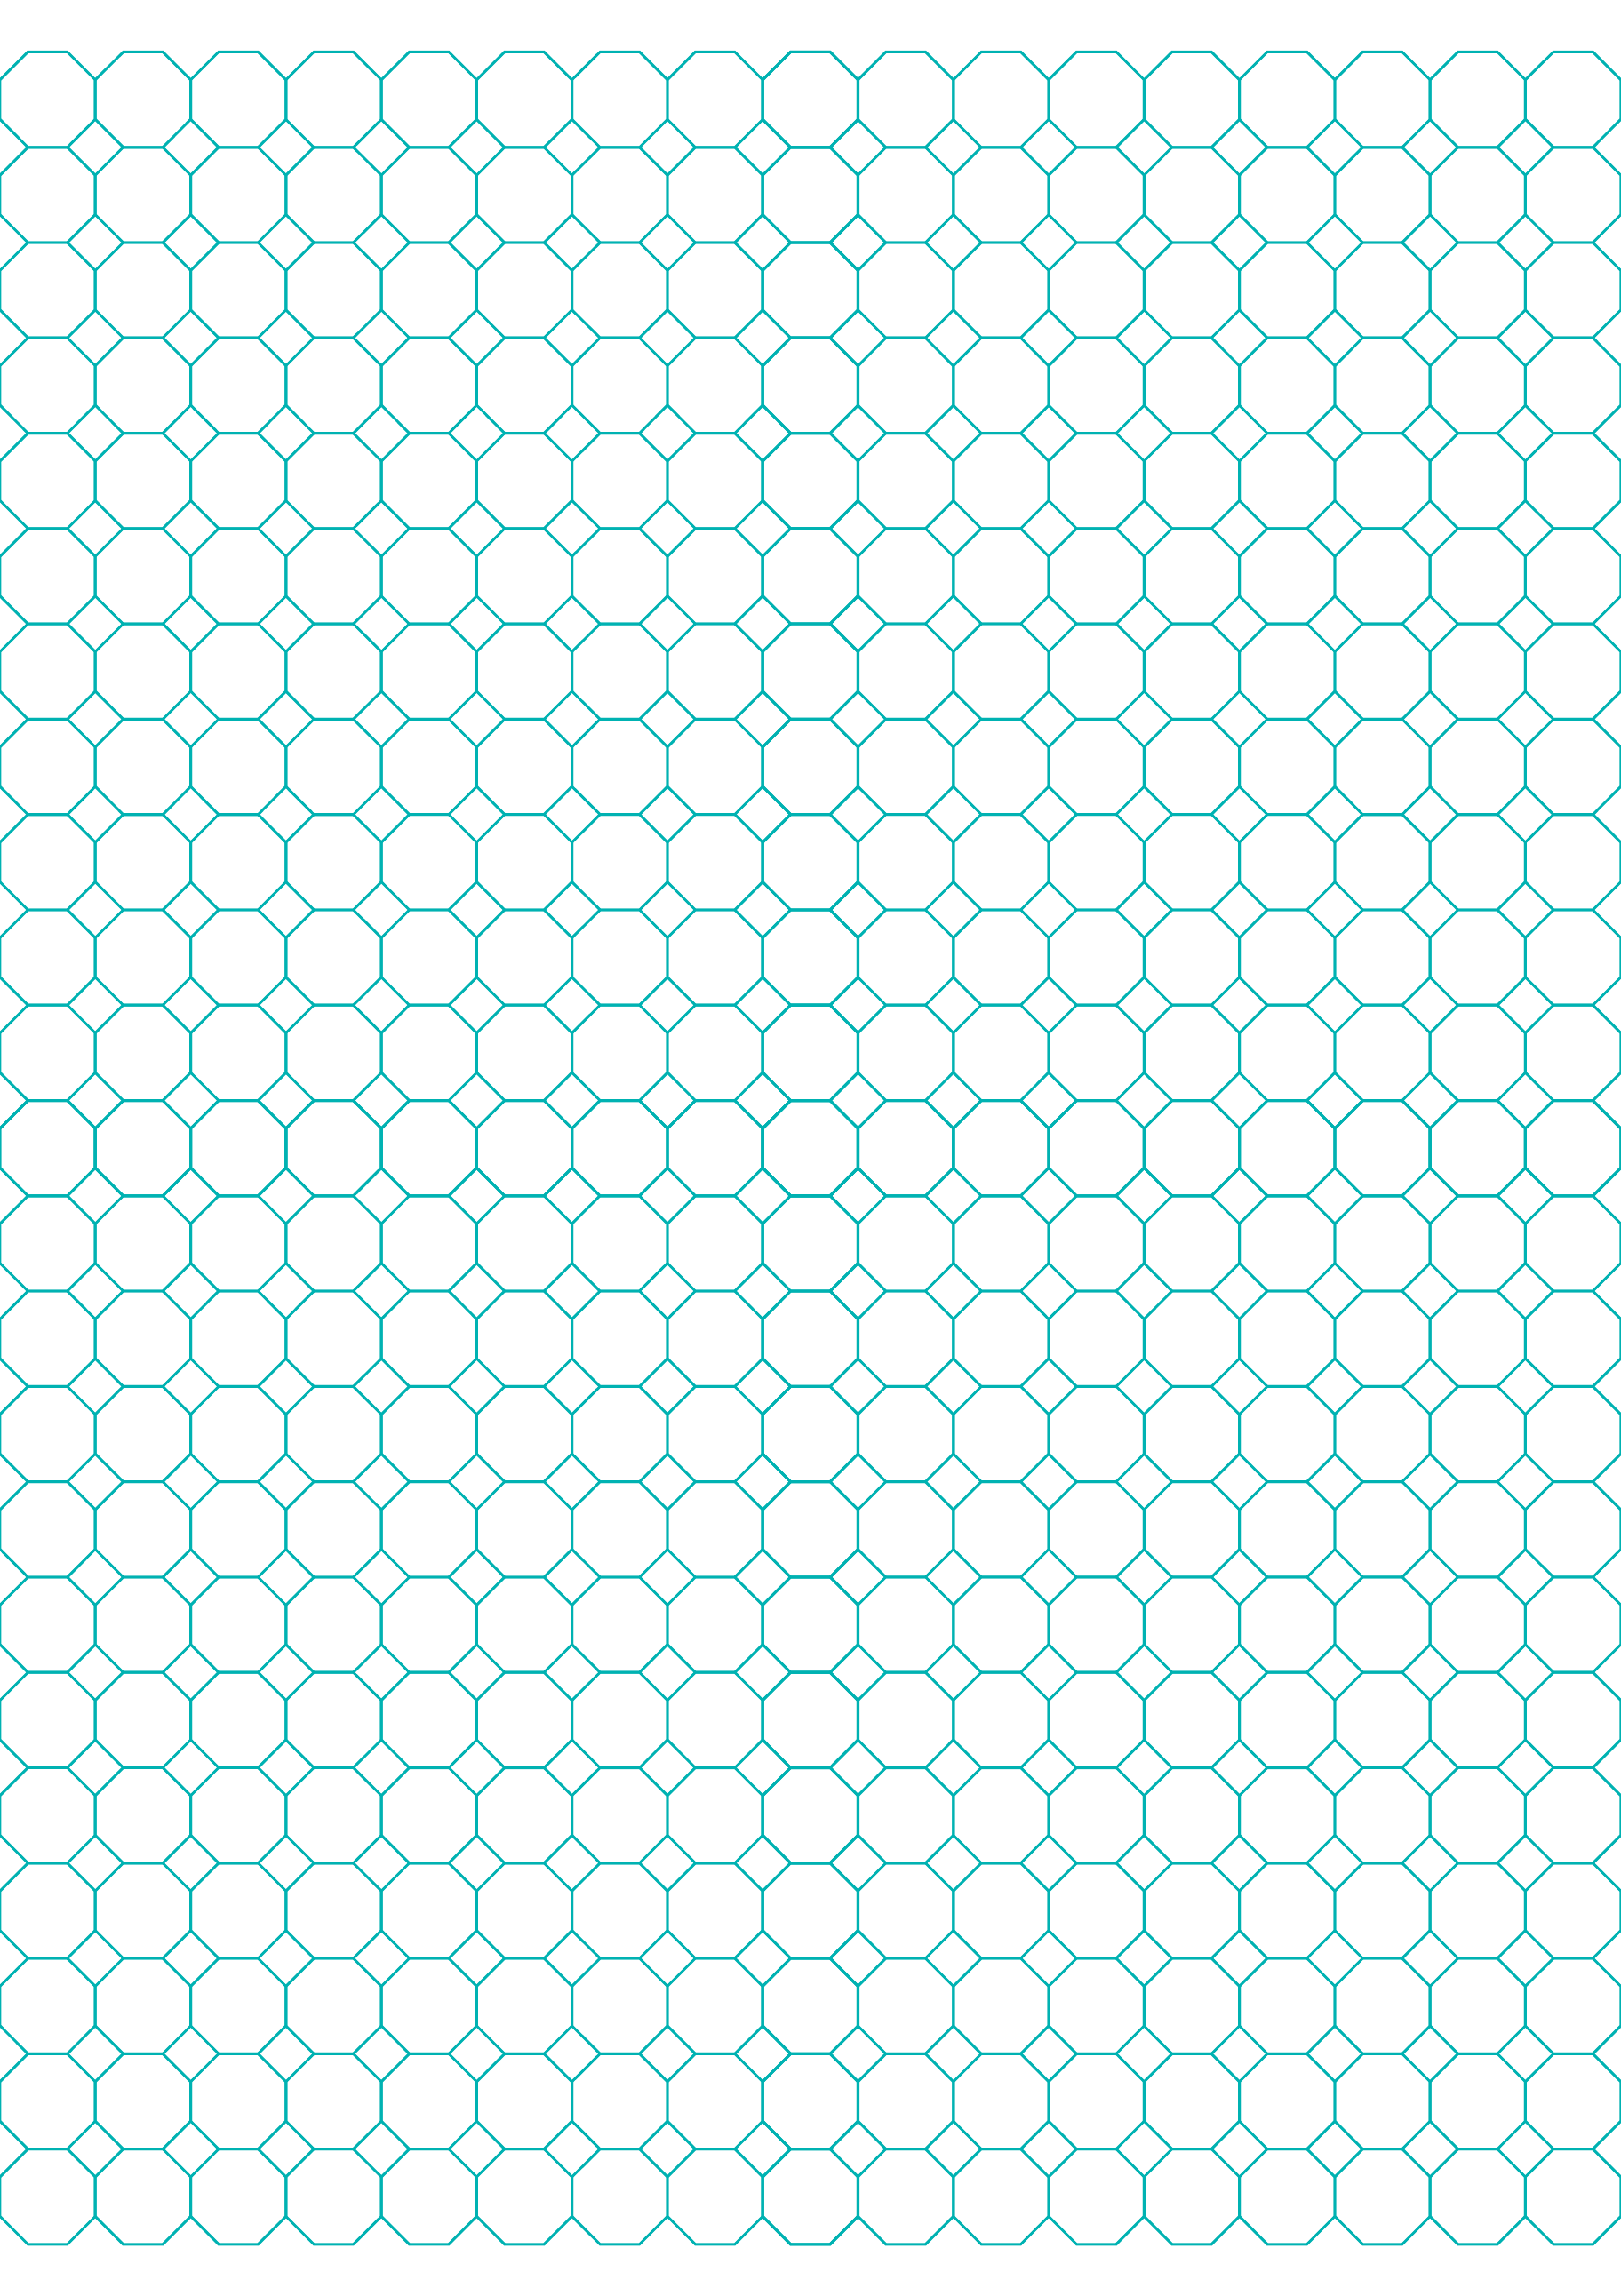 Octagon Graph Paper | Octagon Graph Paper With 1 2 Inch Spacing On Letter Sized Paper Free